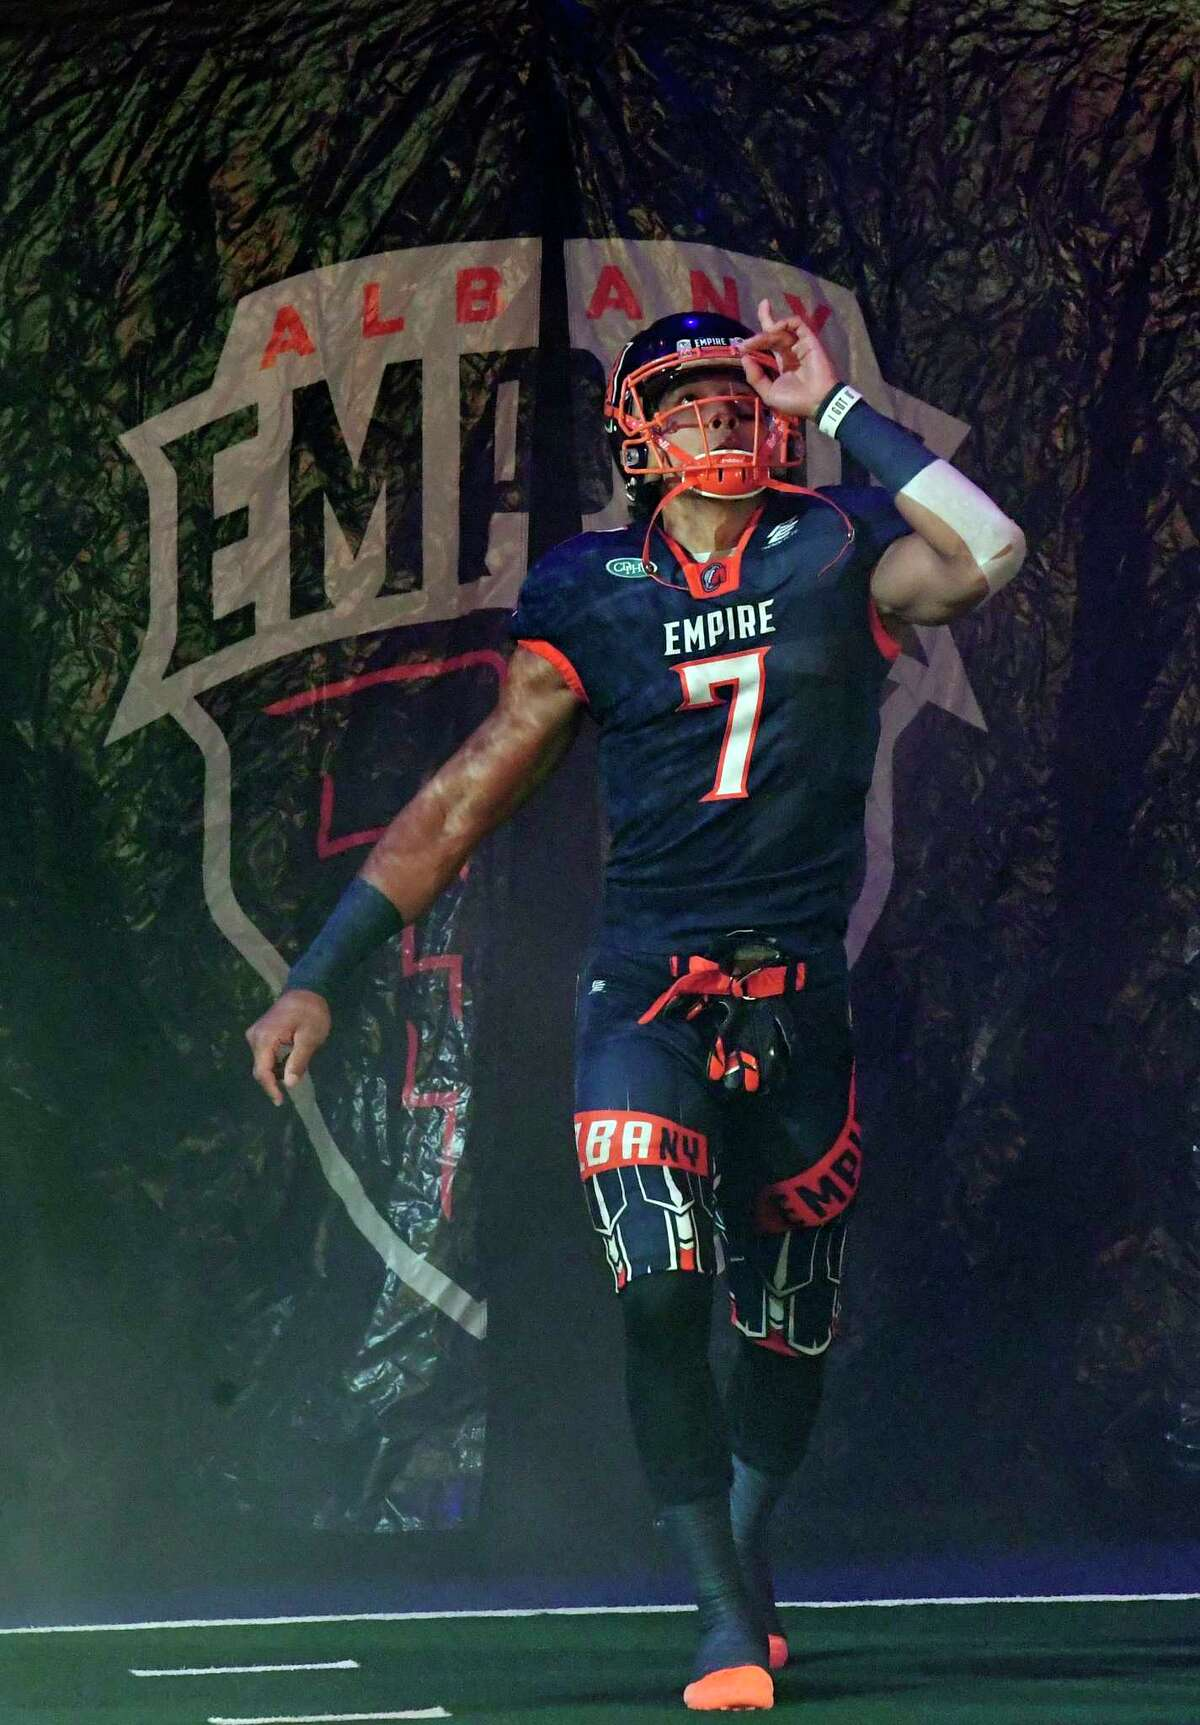 Malachi Jones takes the field against Baltimore when the team played in the Arena Football League. He is rejoining the team now that it's in the National Arena League.